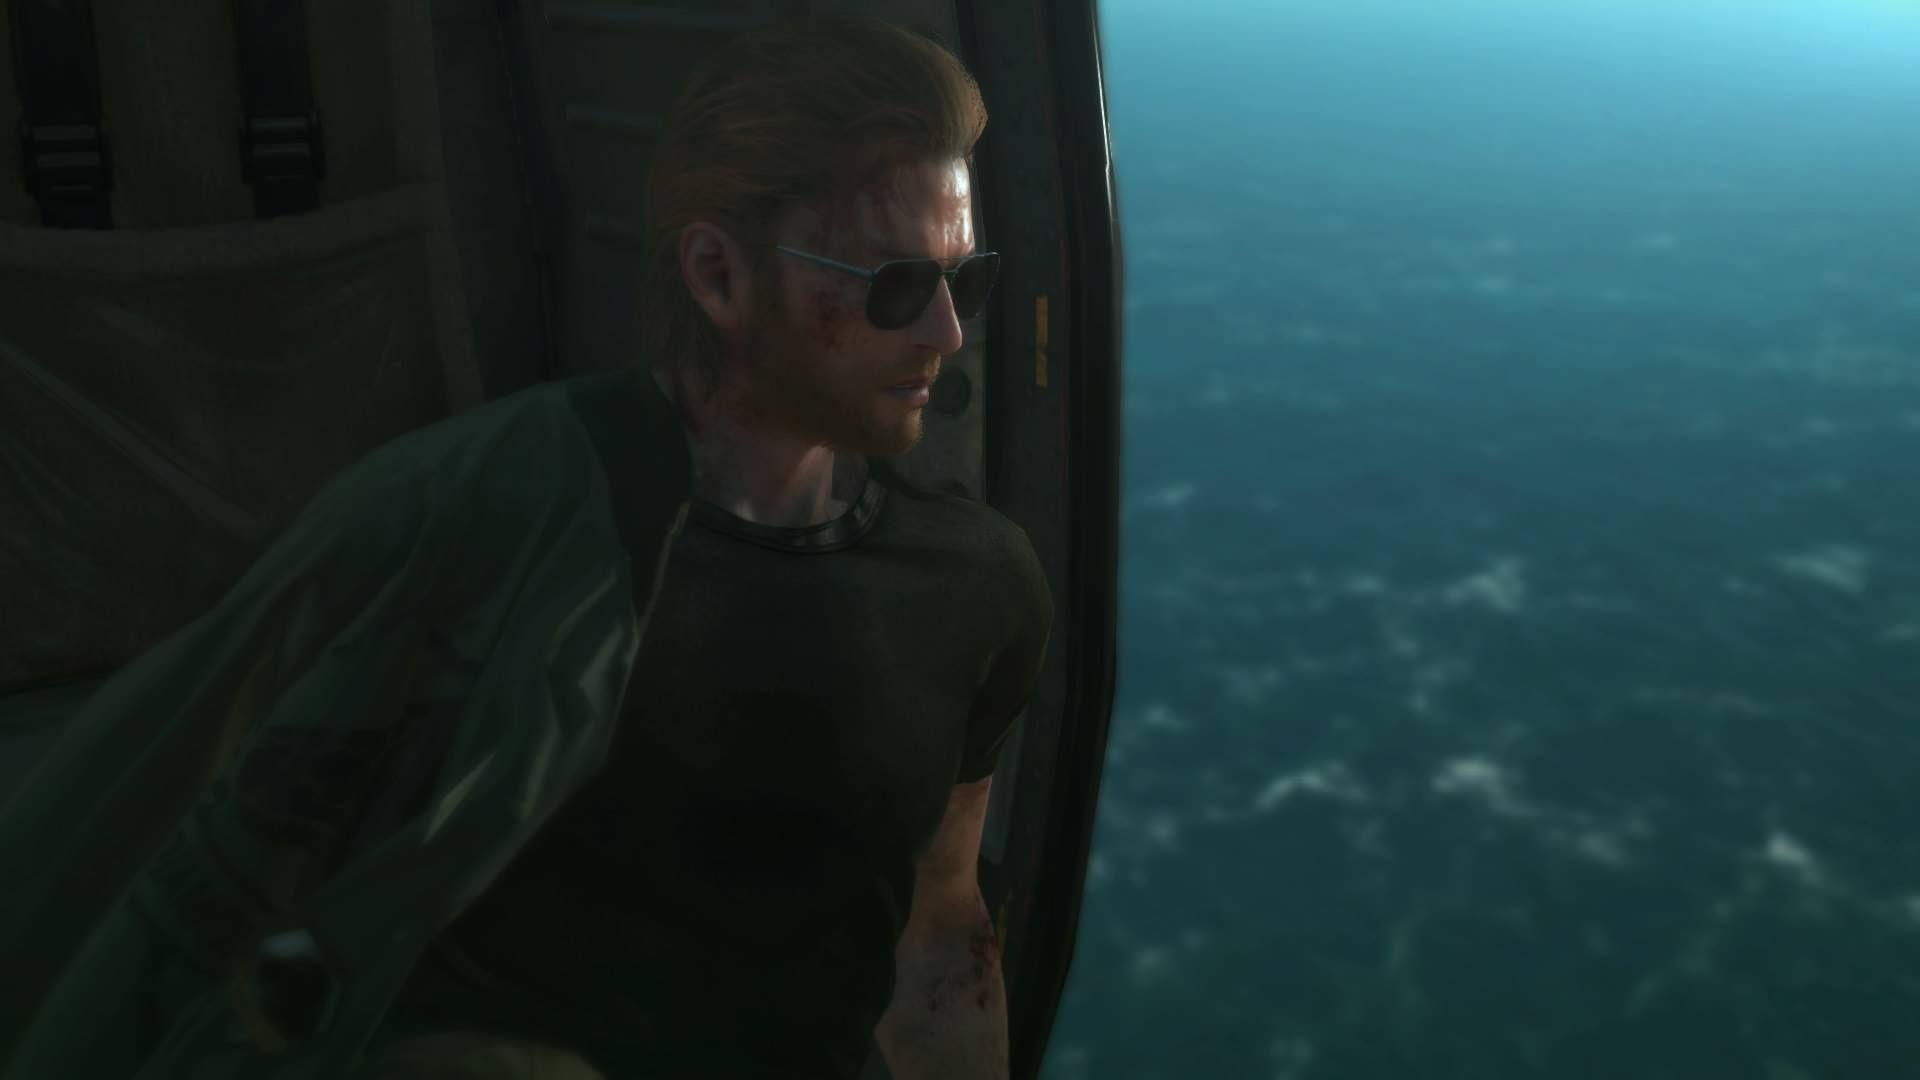 Pin On Metal Gear Solid V The Phantom Pain Kazuhira mcdonell benedict miller, don't you dare pull that pin. pinterest